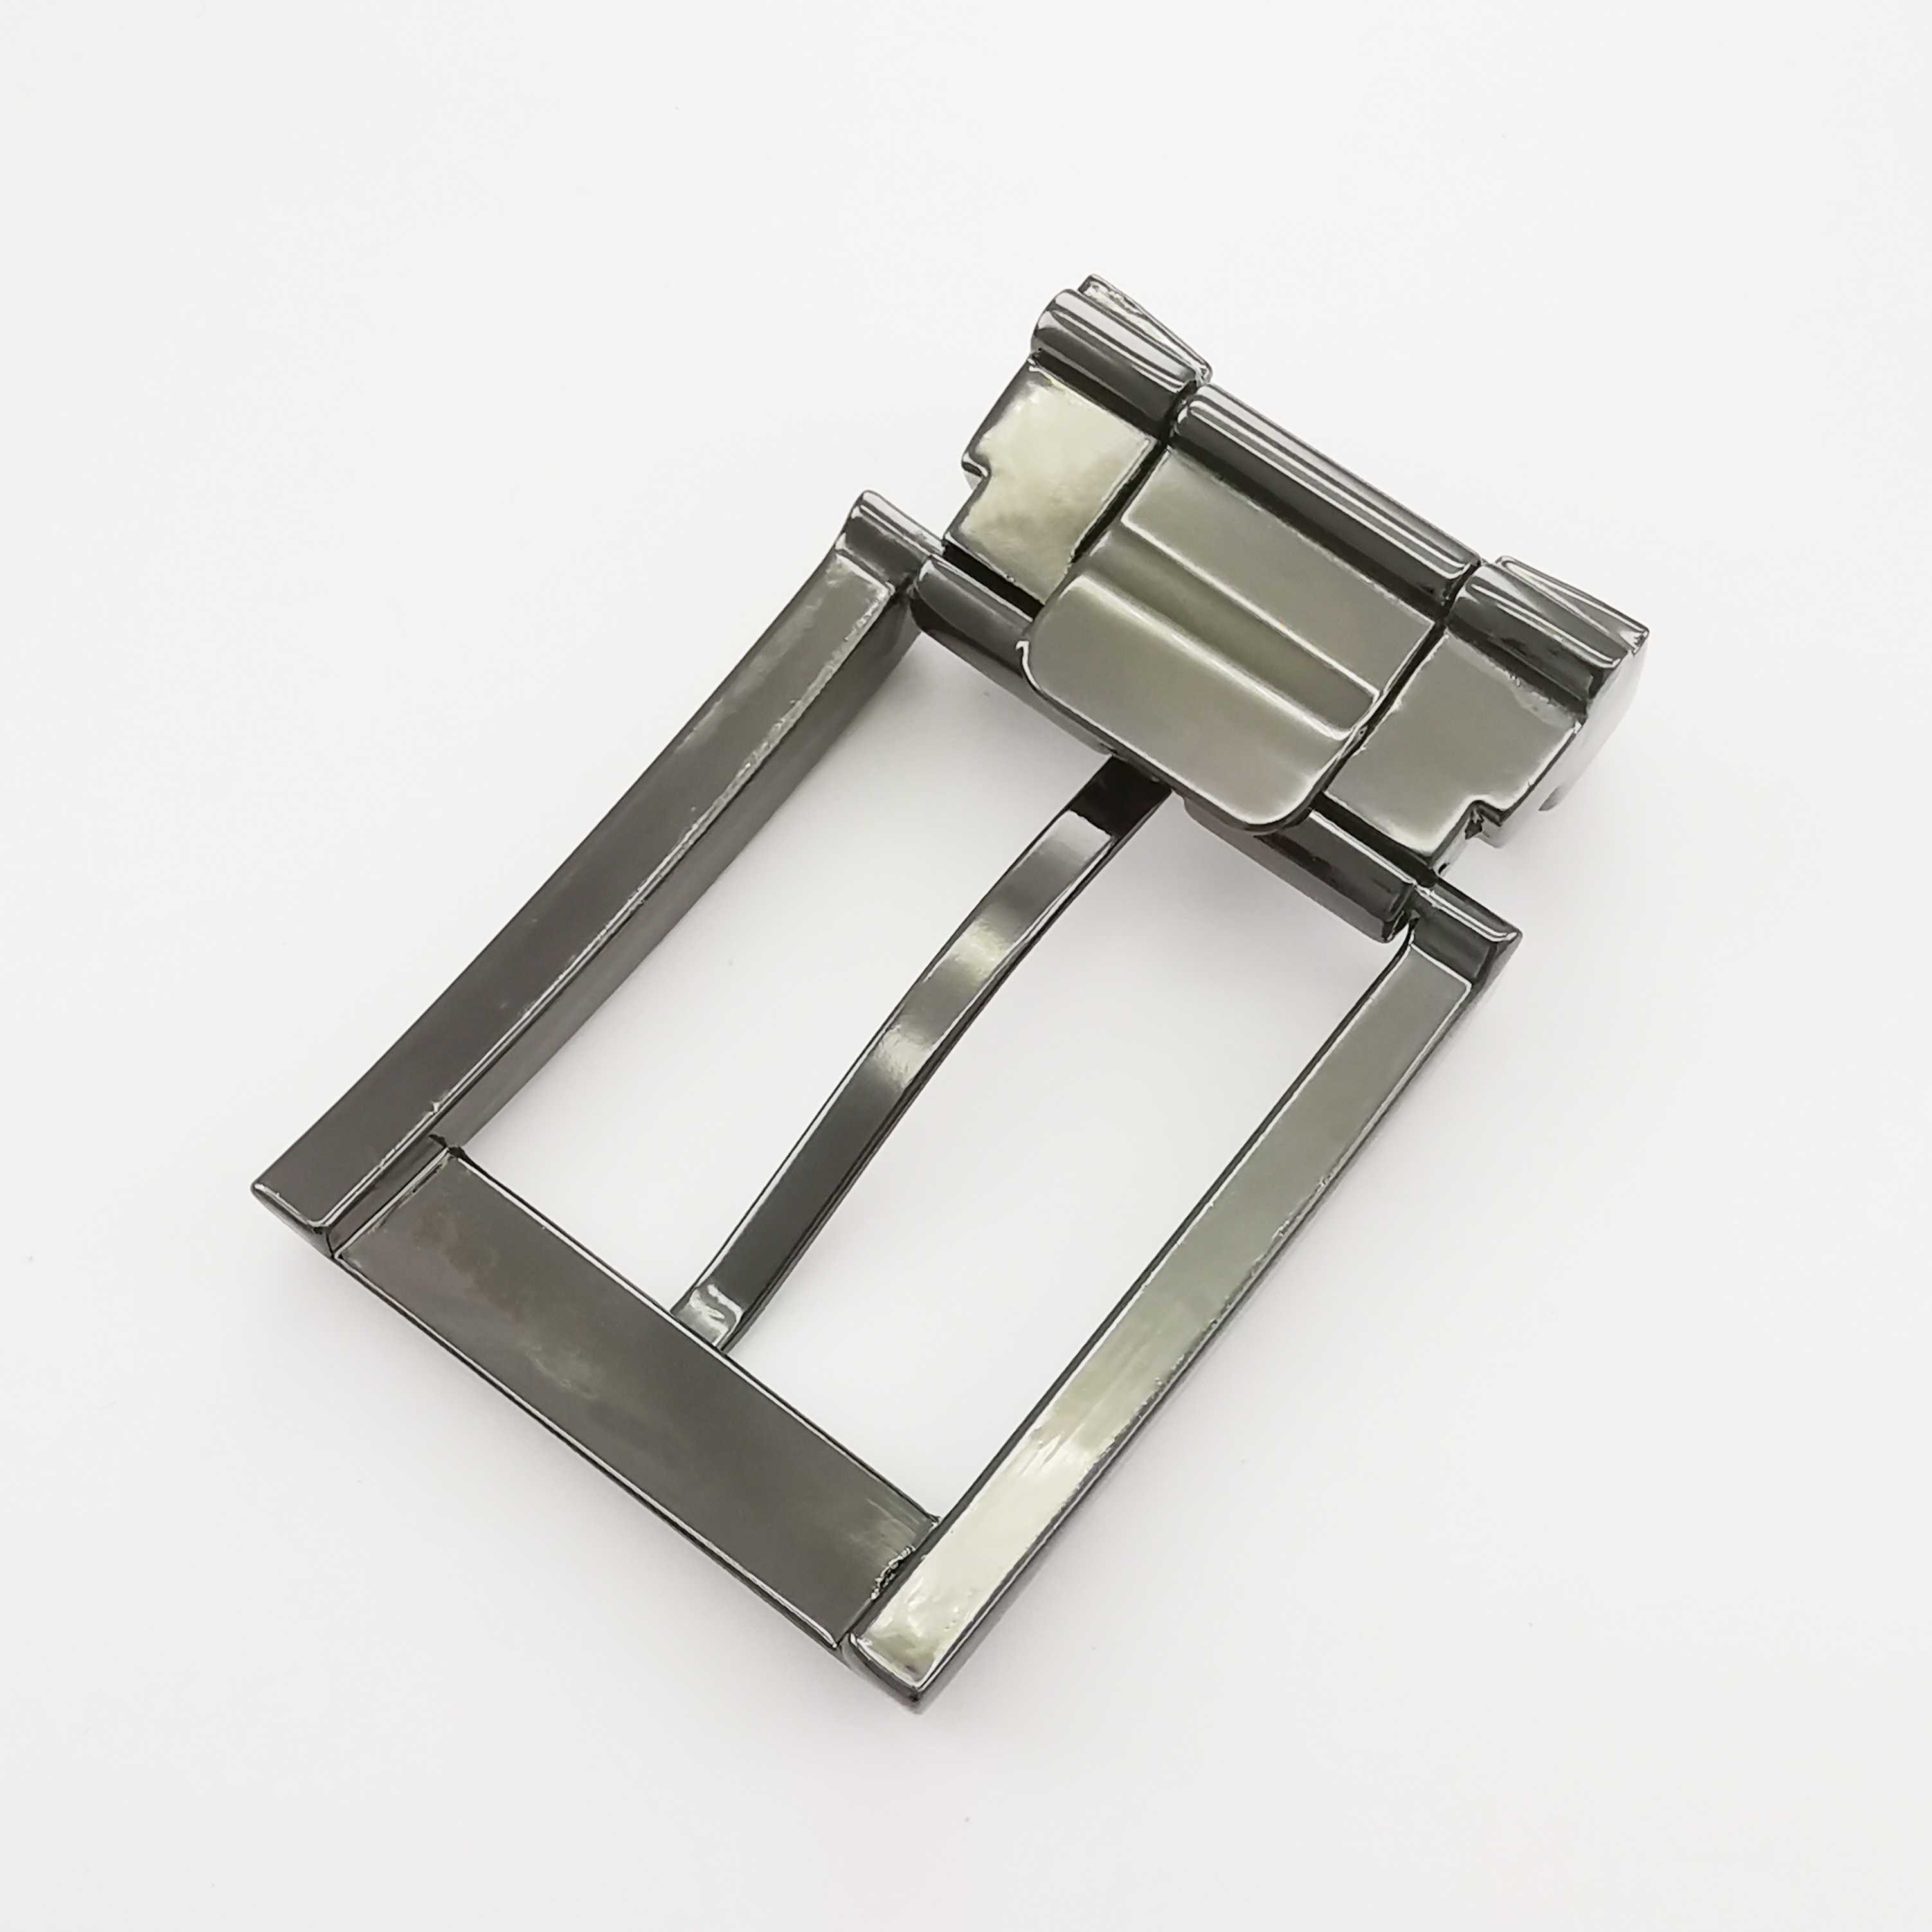 Colorful New Trendy Top Quality New Design  Customized Design High Quality  metal belt buckle